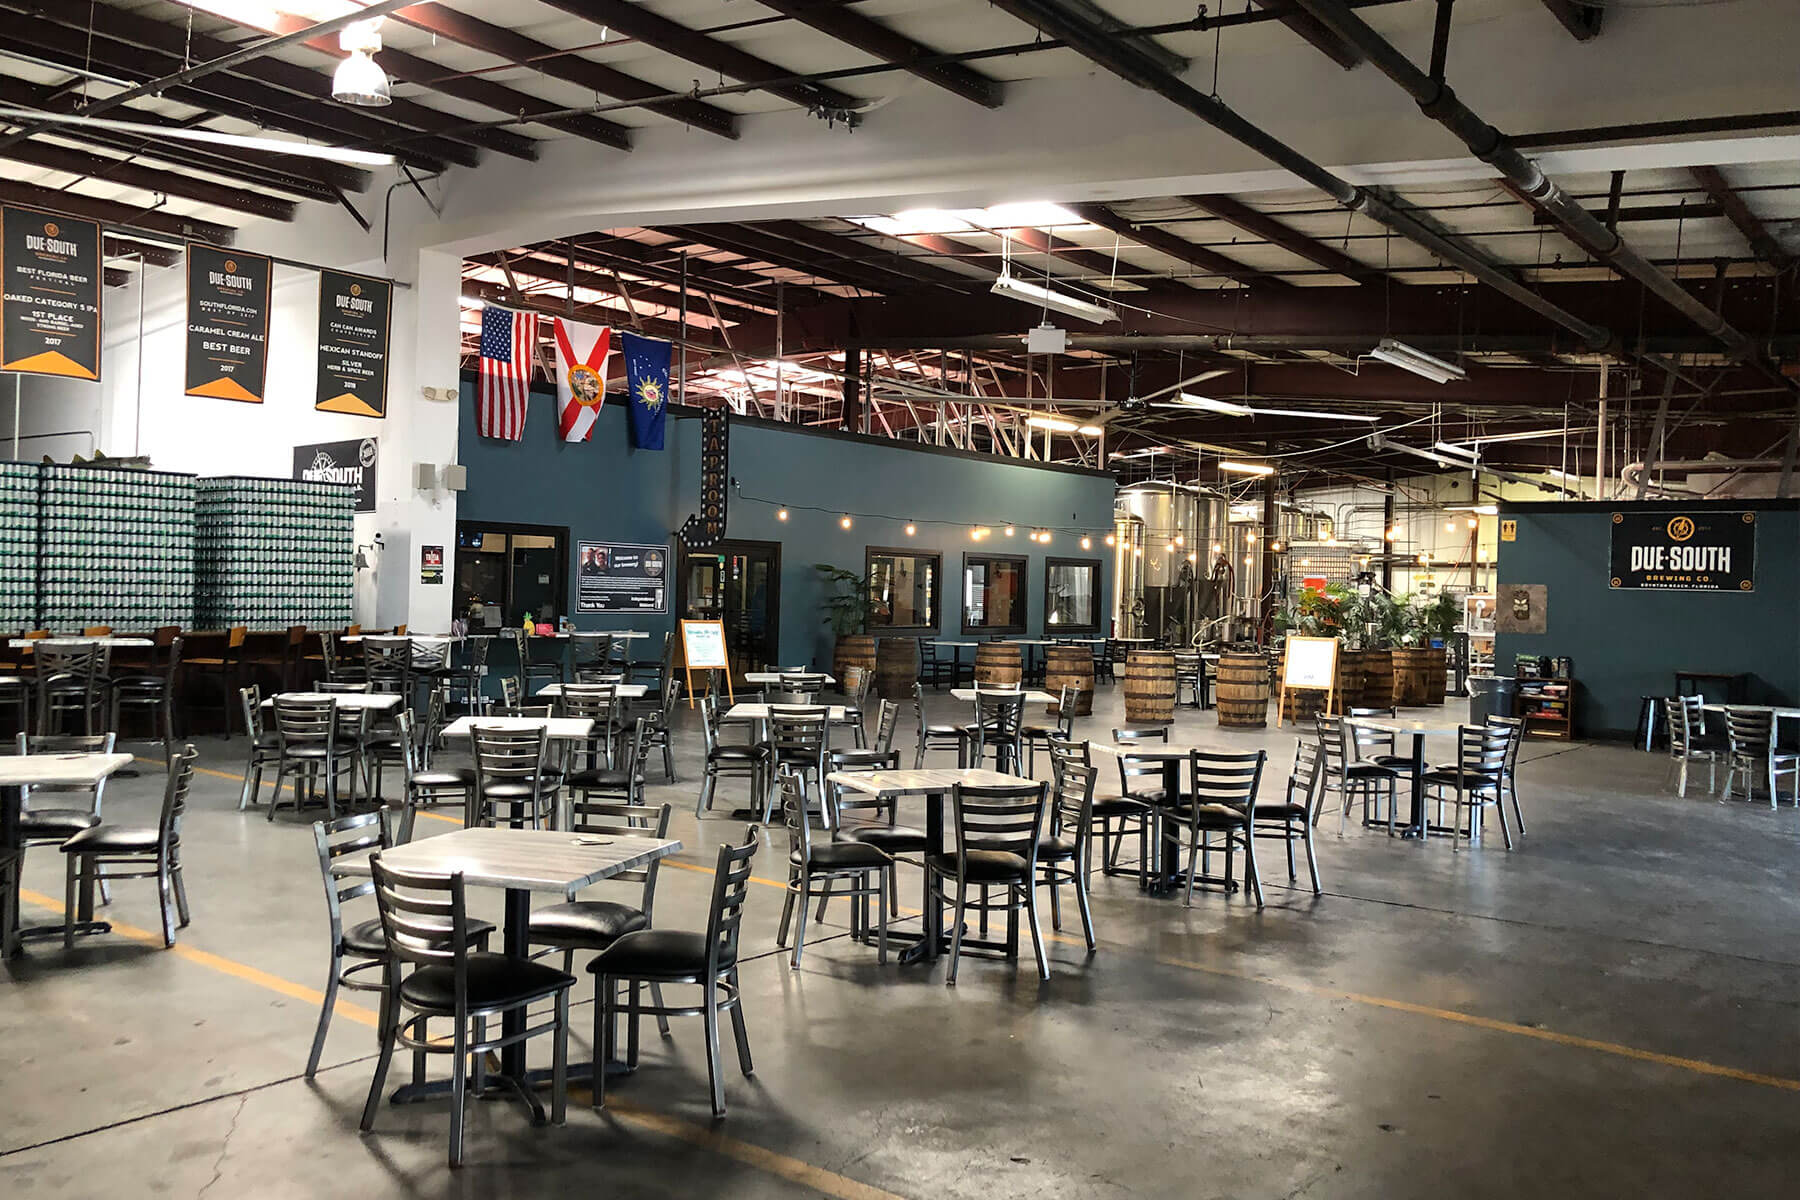 Inside the taproom at Due South Brewing Co. in Boynton Beach, Florida